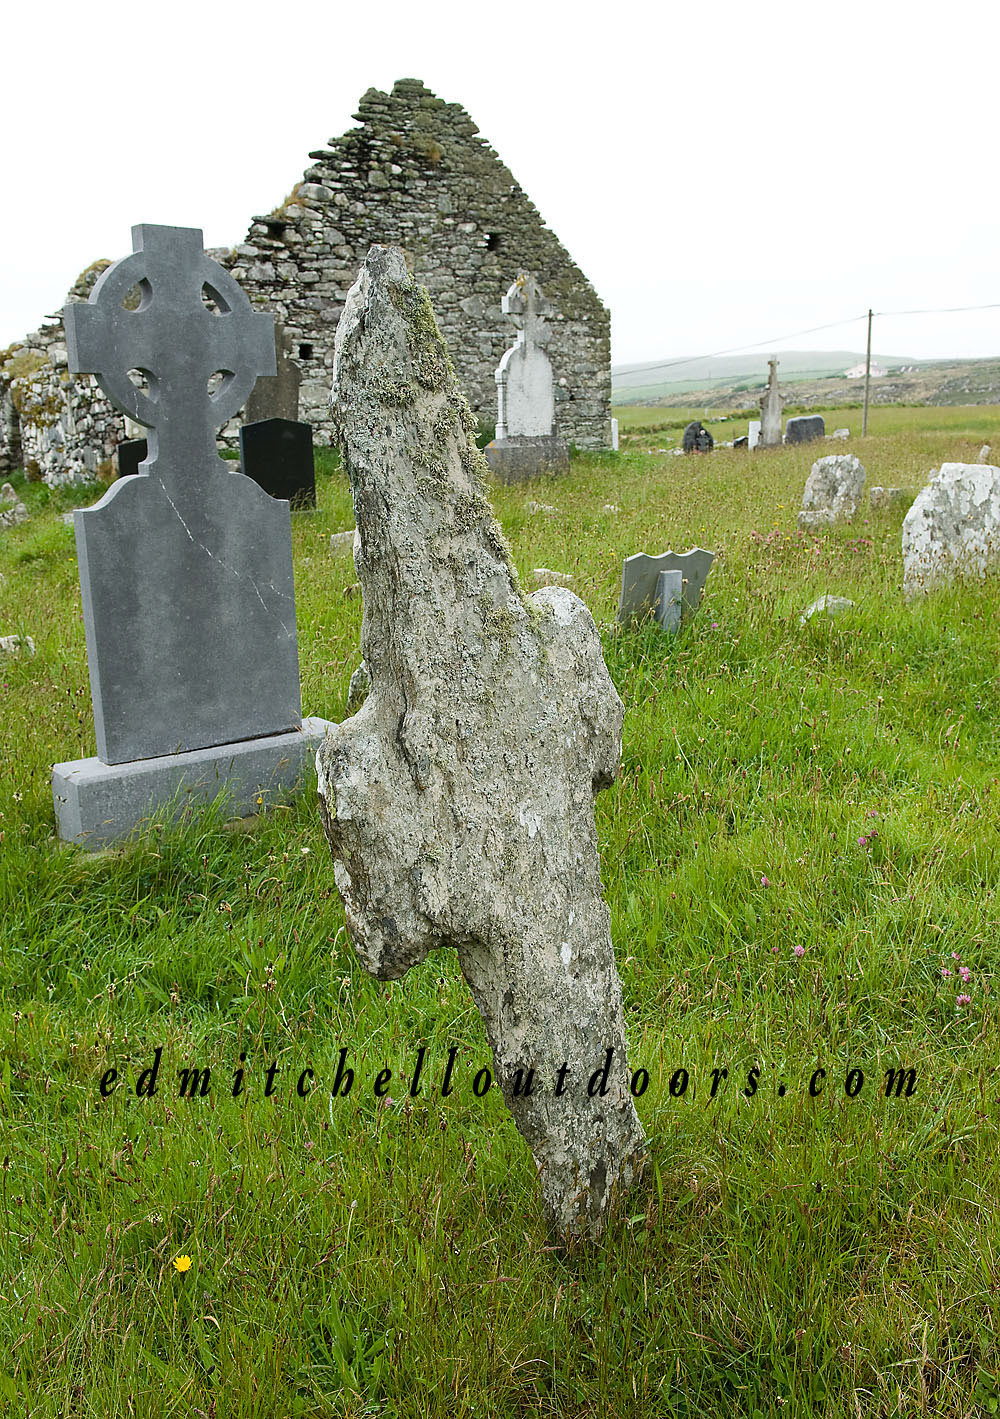 The Earliest Christian Cross in Ireland?